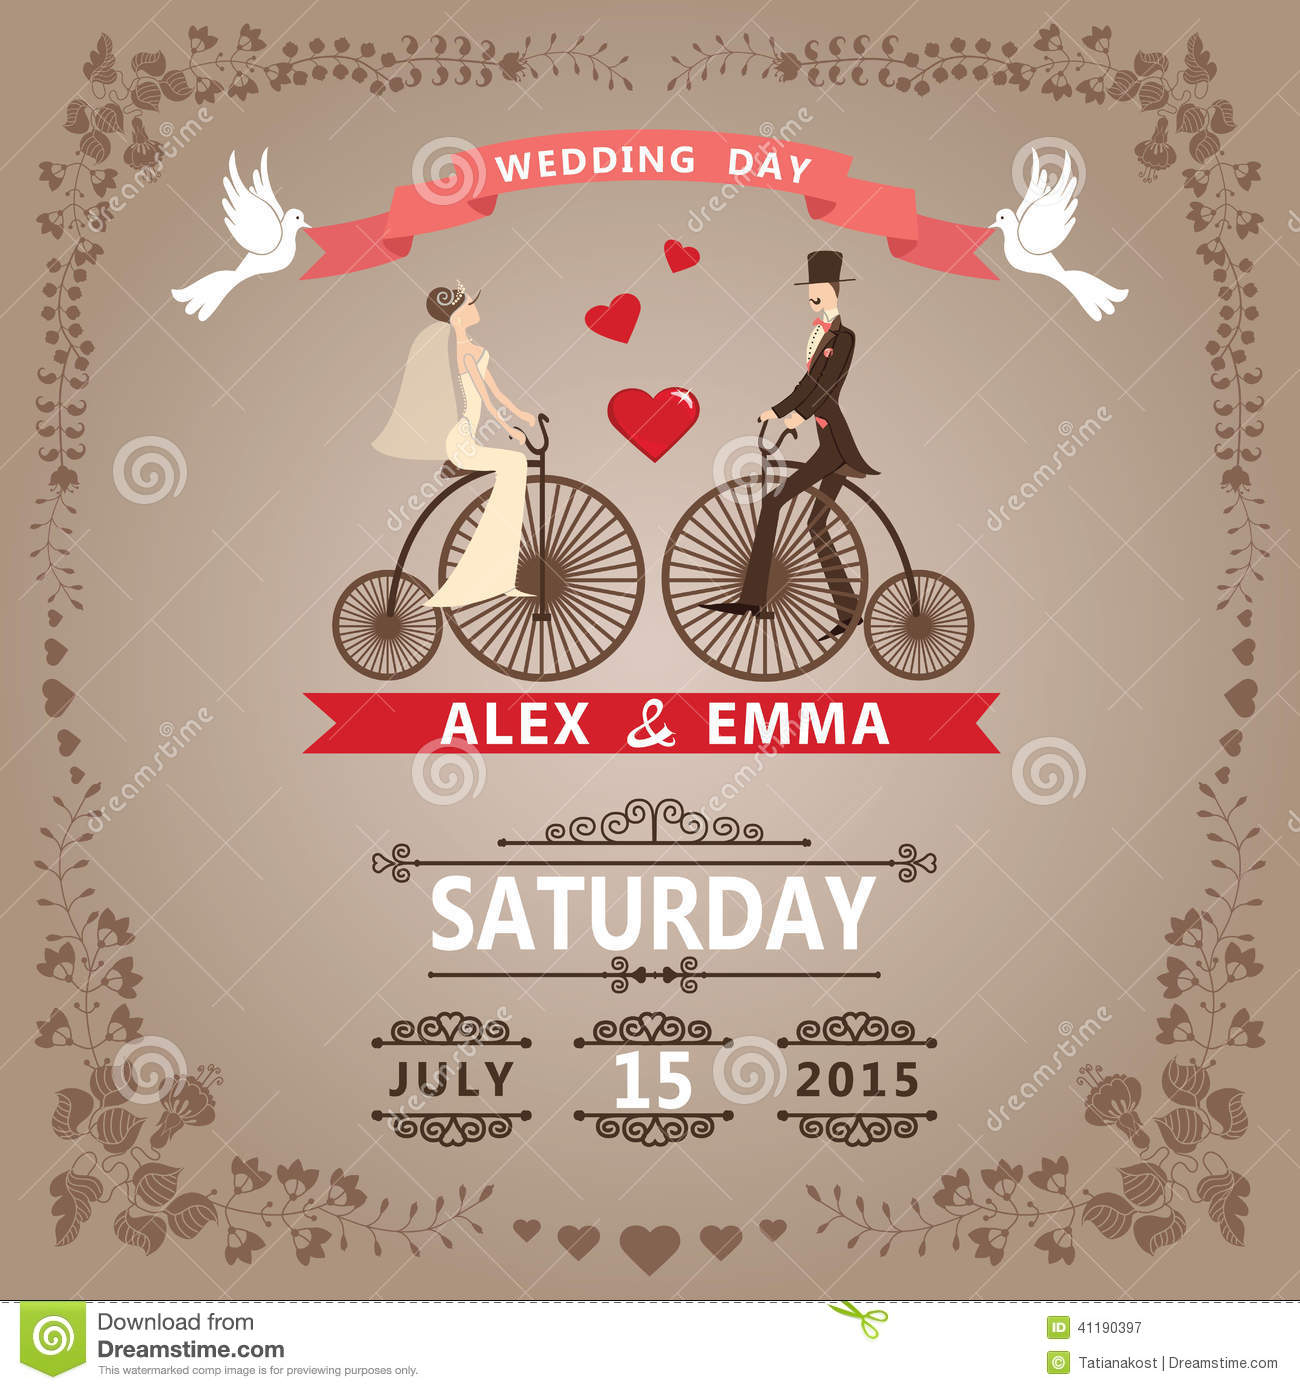 Wedding Invitation With Bride Groomretro Bicycle Floral Frame Stock Vector